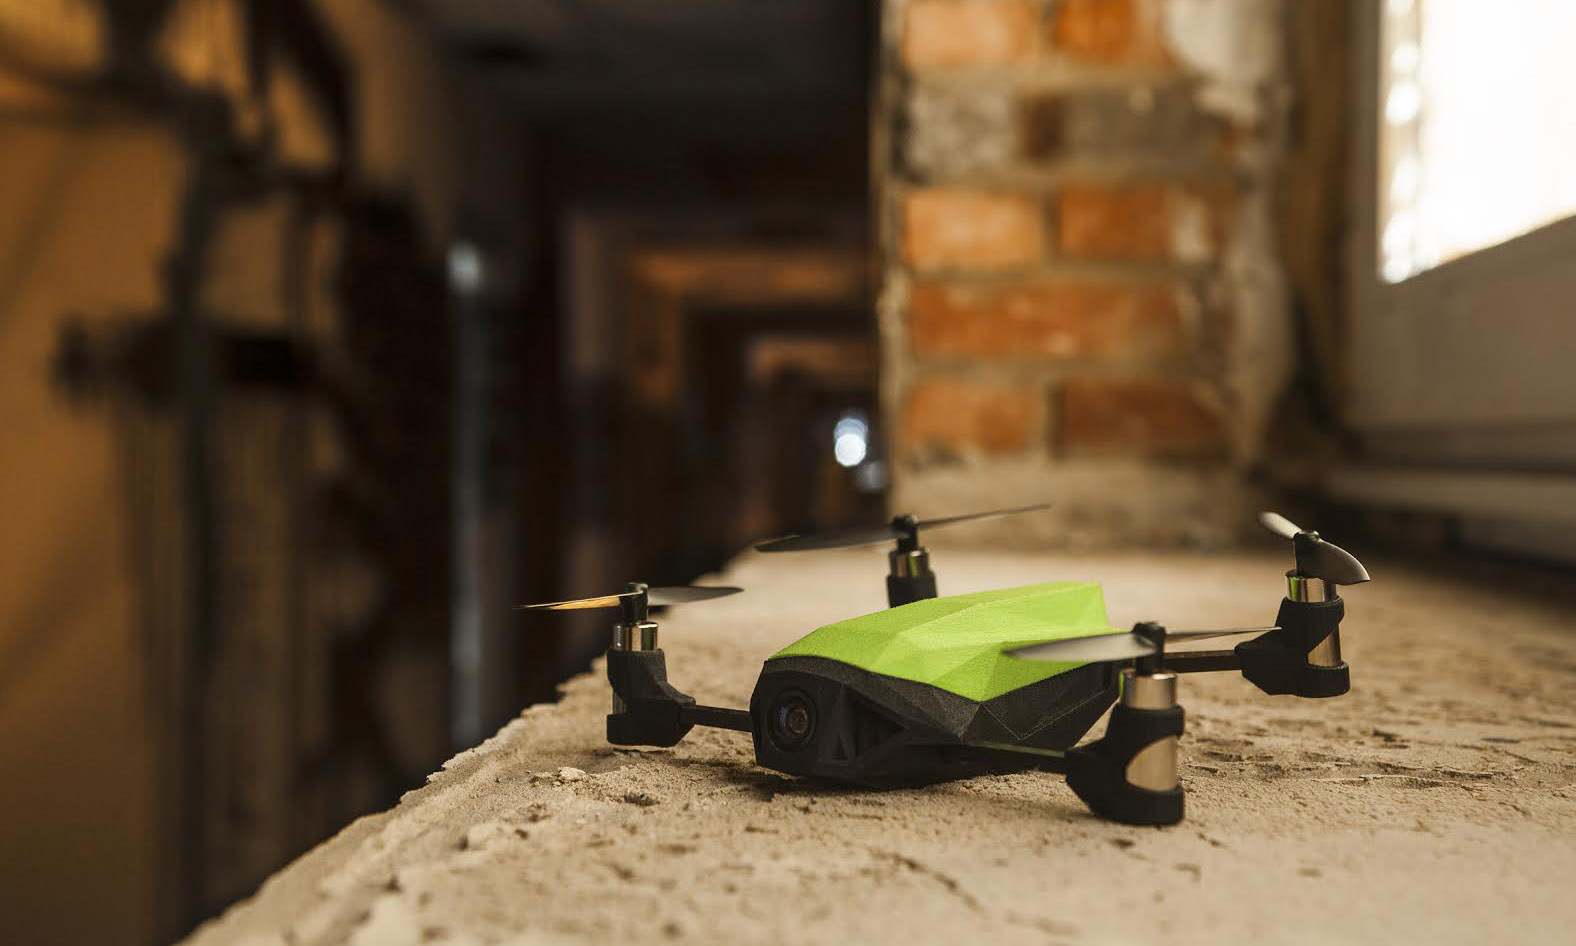 nanoracing 3D printed drone